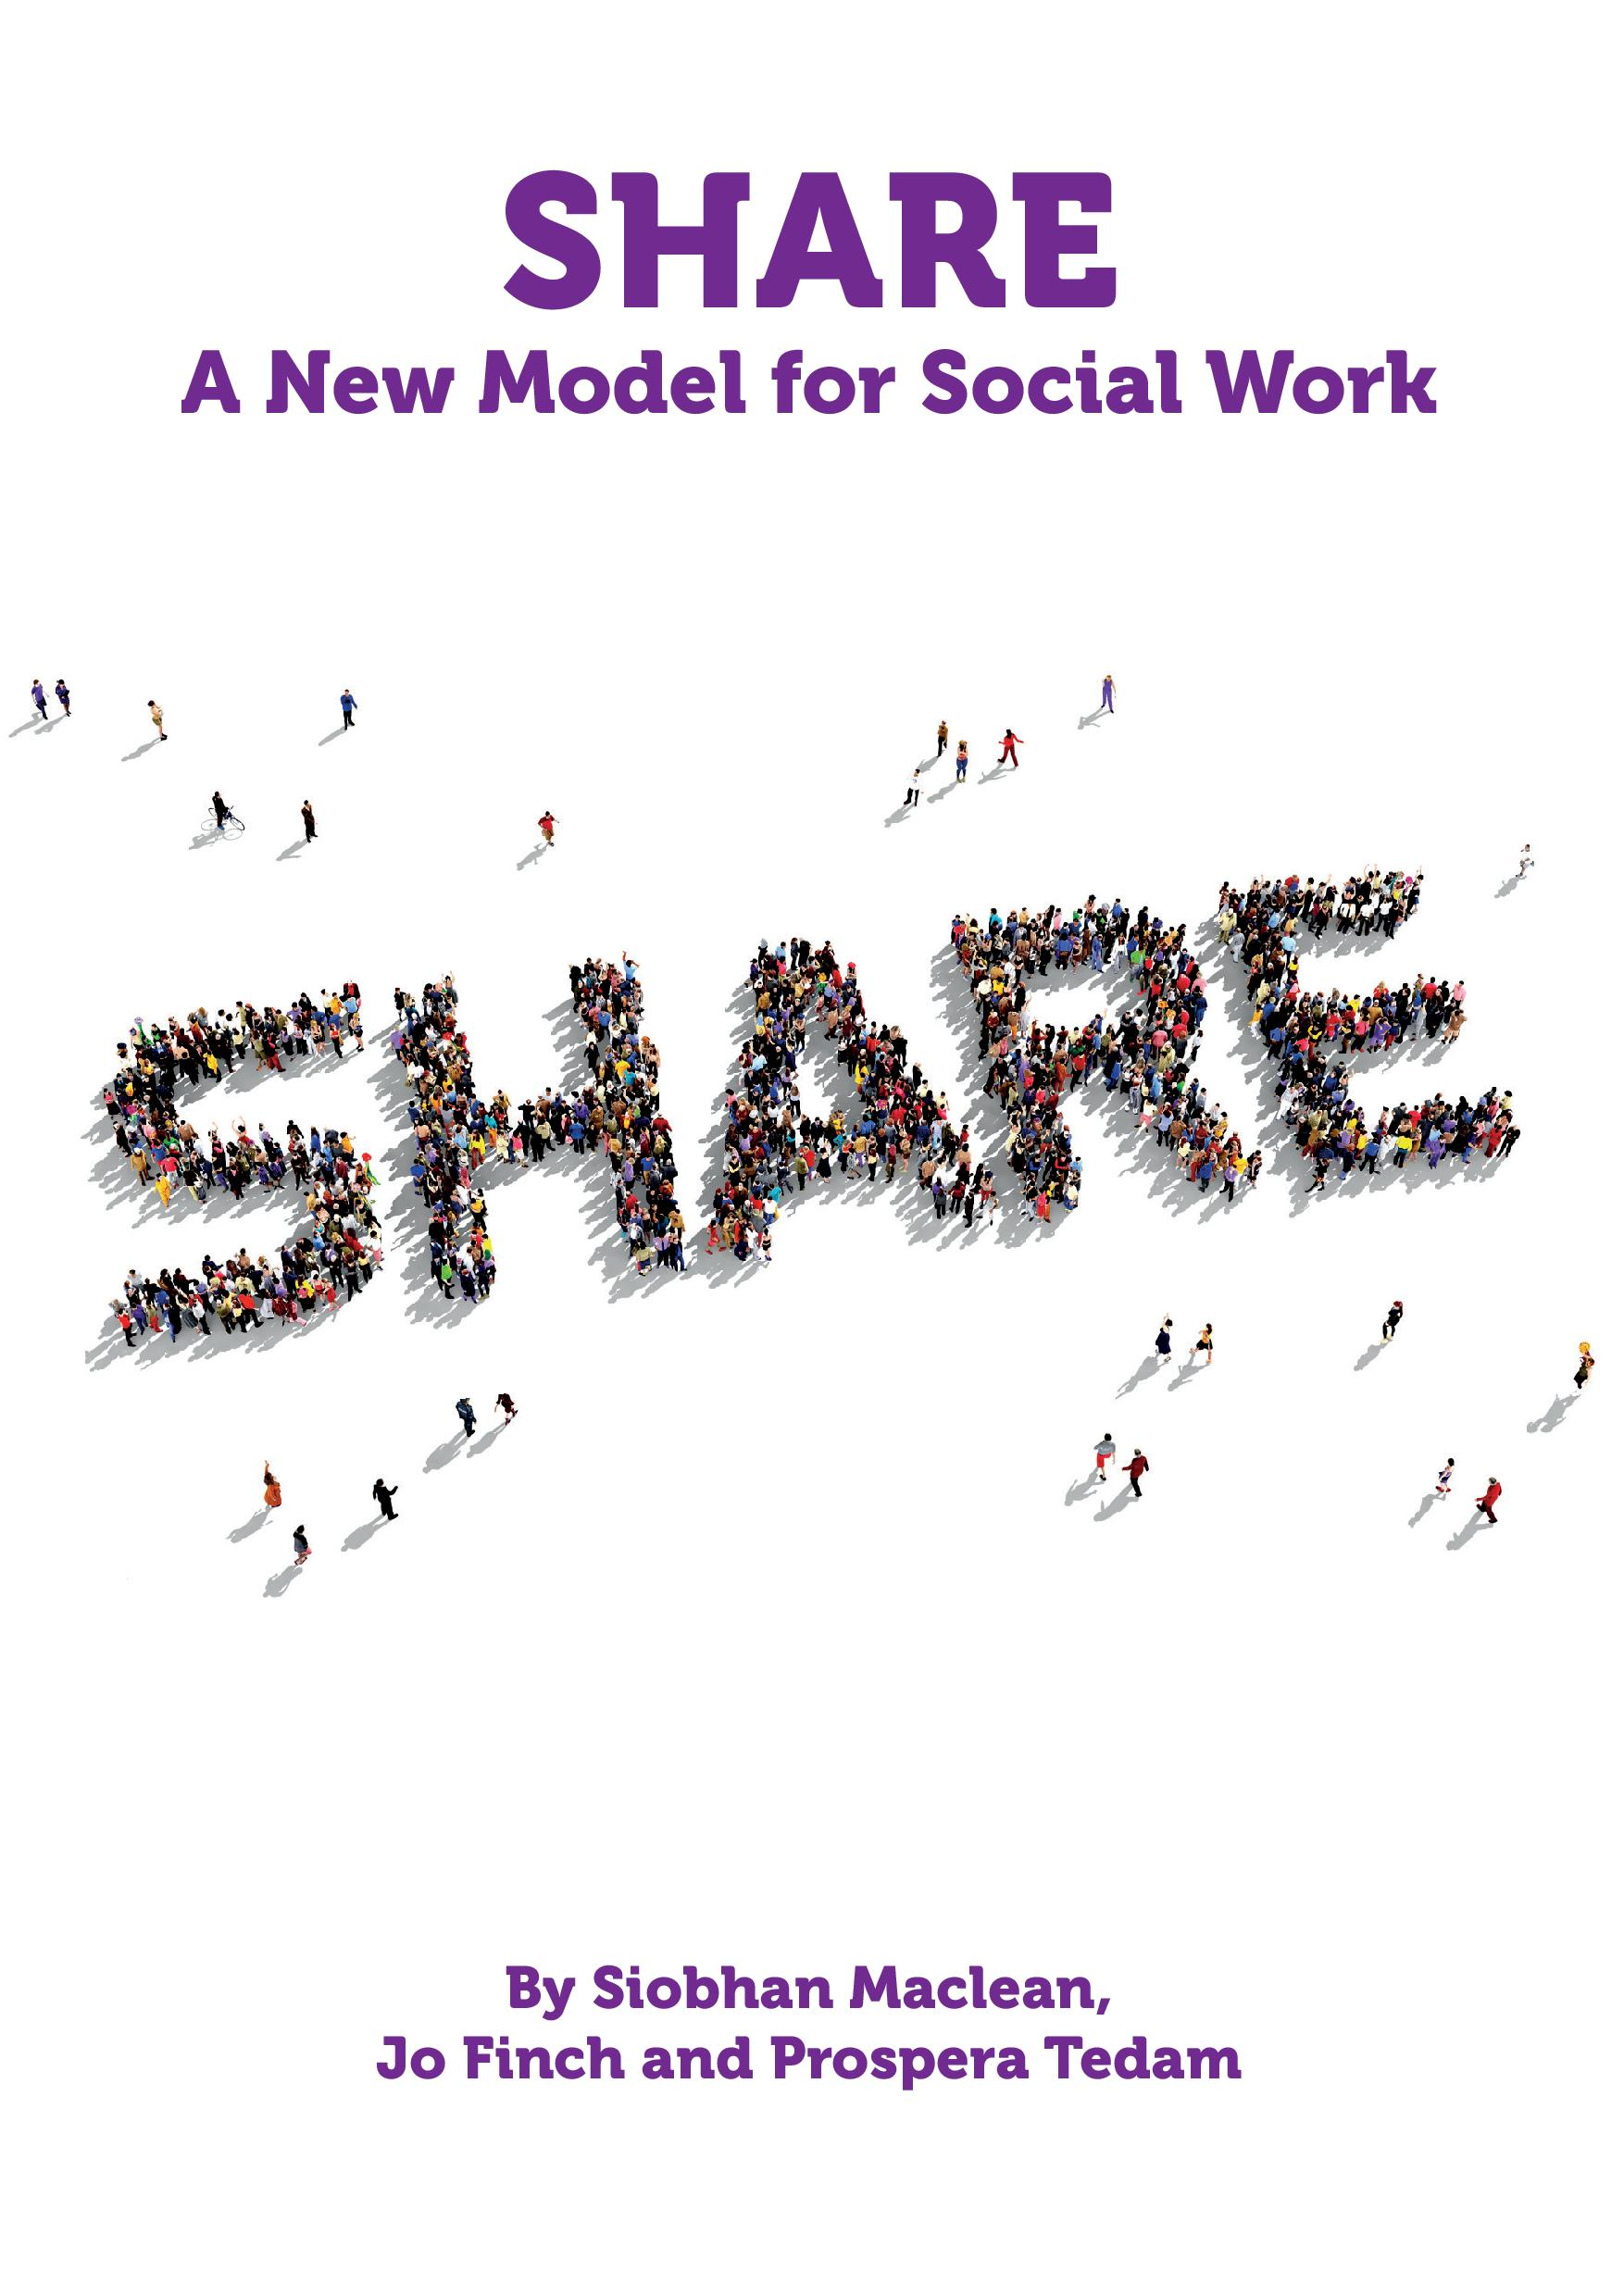 Share: A New Model for Social Work